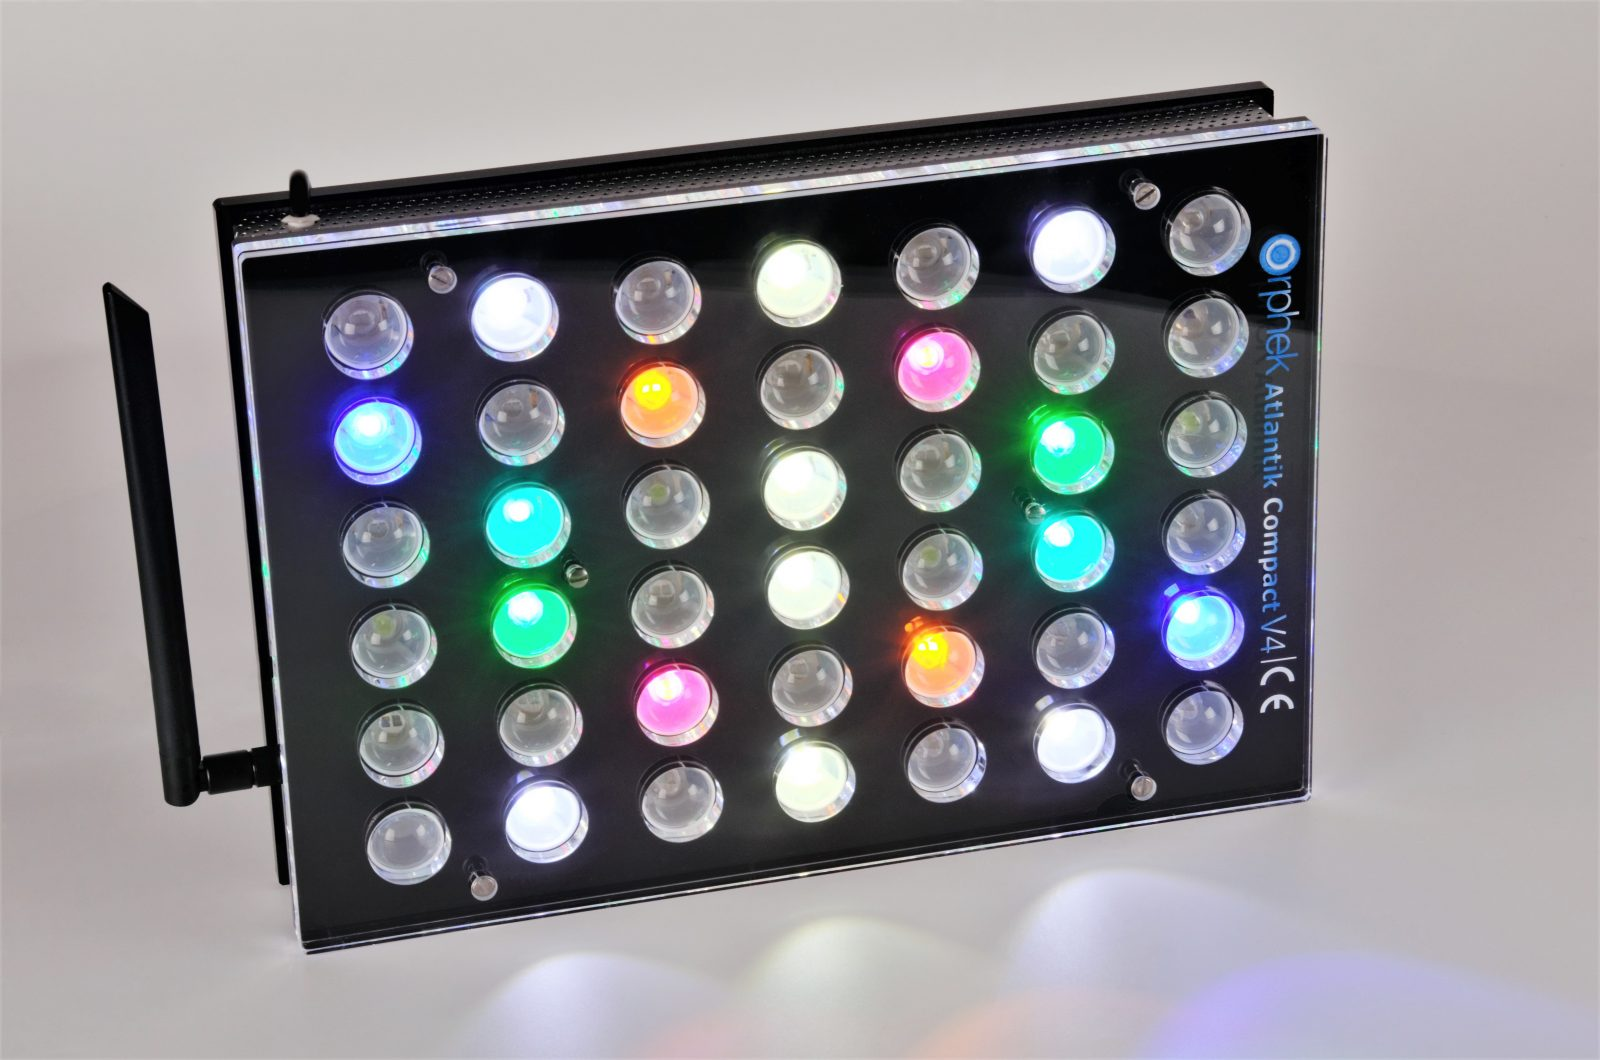 Orphek-Aquarium-LED-Lighting-Atlantik -Compact-V4-light -on -channel 1+4